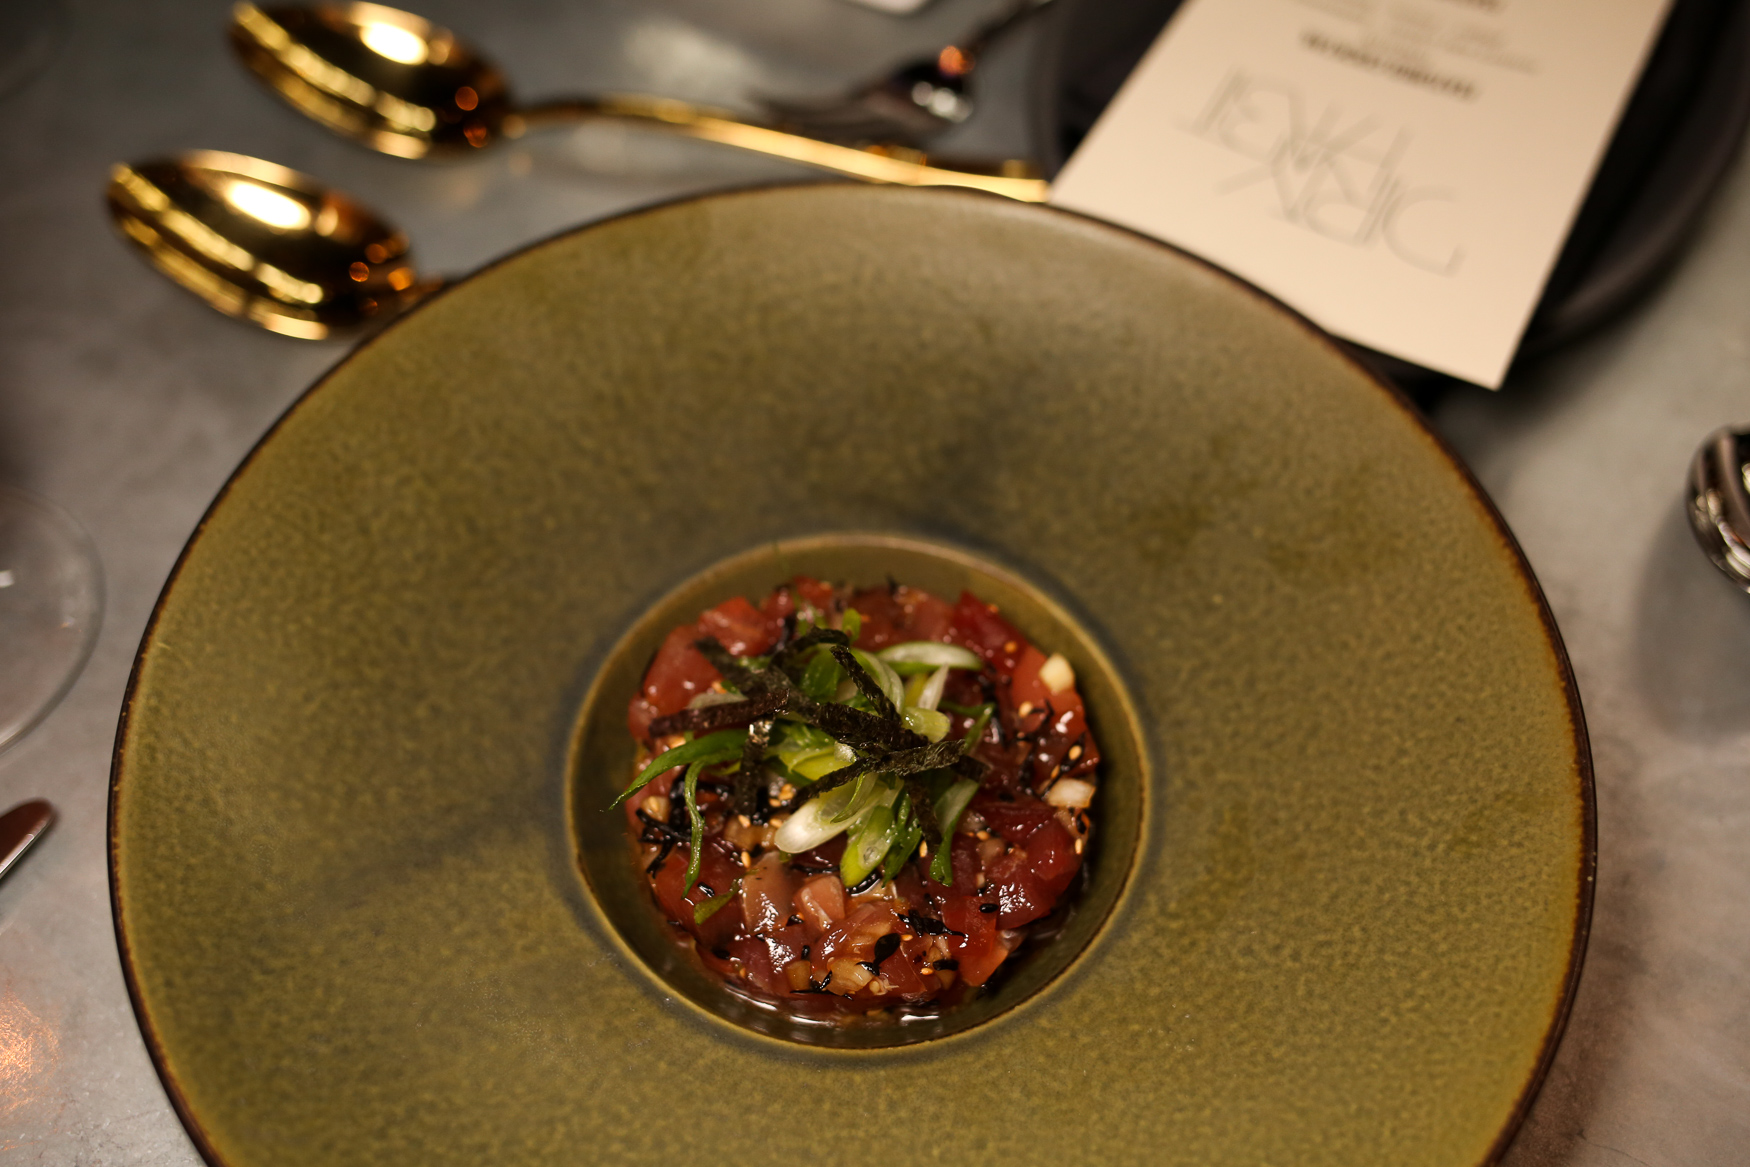 The tuna tartare at Dirty Habit is sure to be a crowd favorite - there's plenty of crunchy elements and flavor variation to keep even the most discerning eater happy, while possibly enticing the tartare skeptic. (Amanda Andrade-Rhoades/DC Refined)